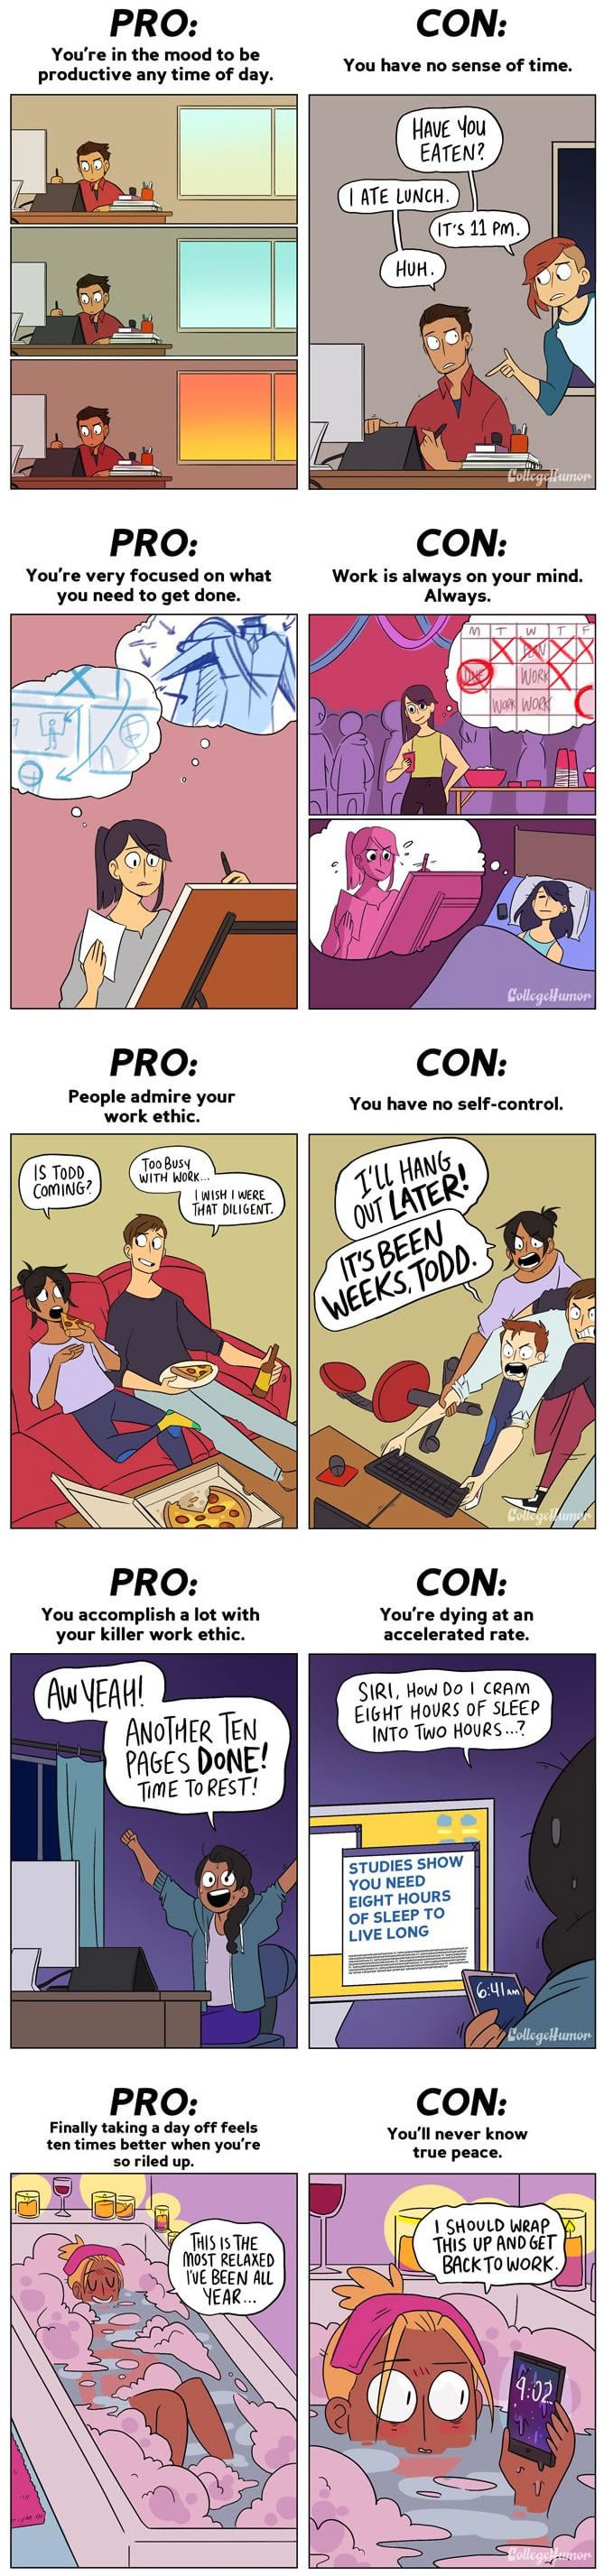 5 Hilarious Comics About The Pros And Cons Of Being a Workaholic